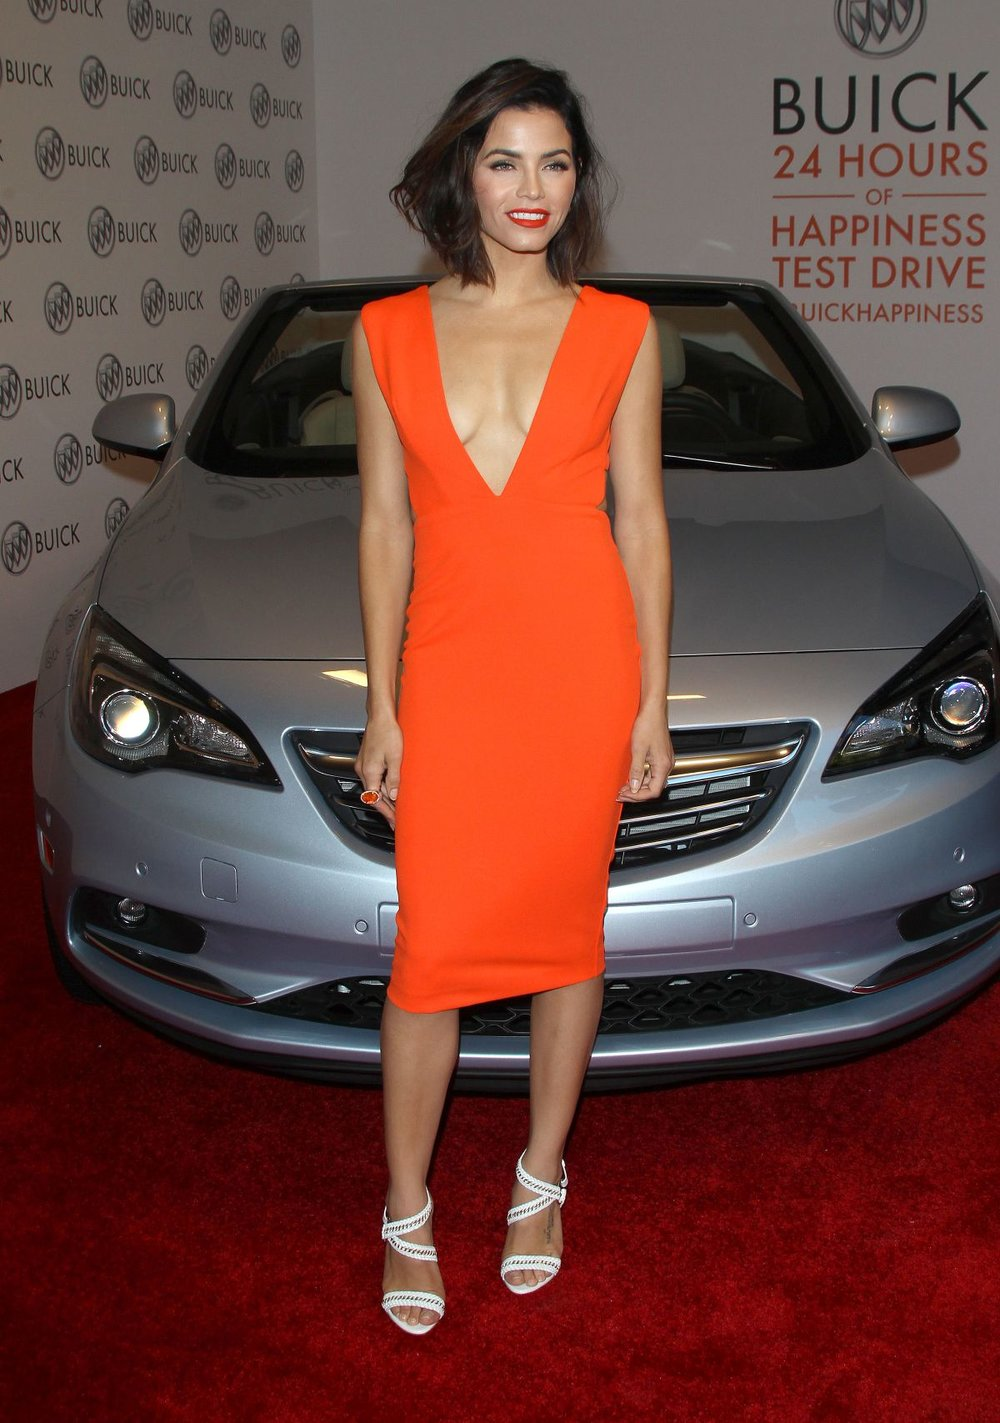 jenna-dewan-at-buick-24-hours-of-happiness-test-drive-launch-in-los-angeles_12.jpg